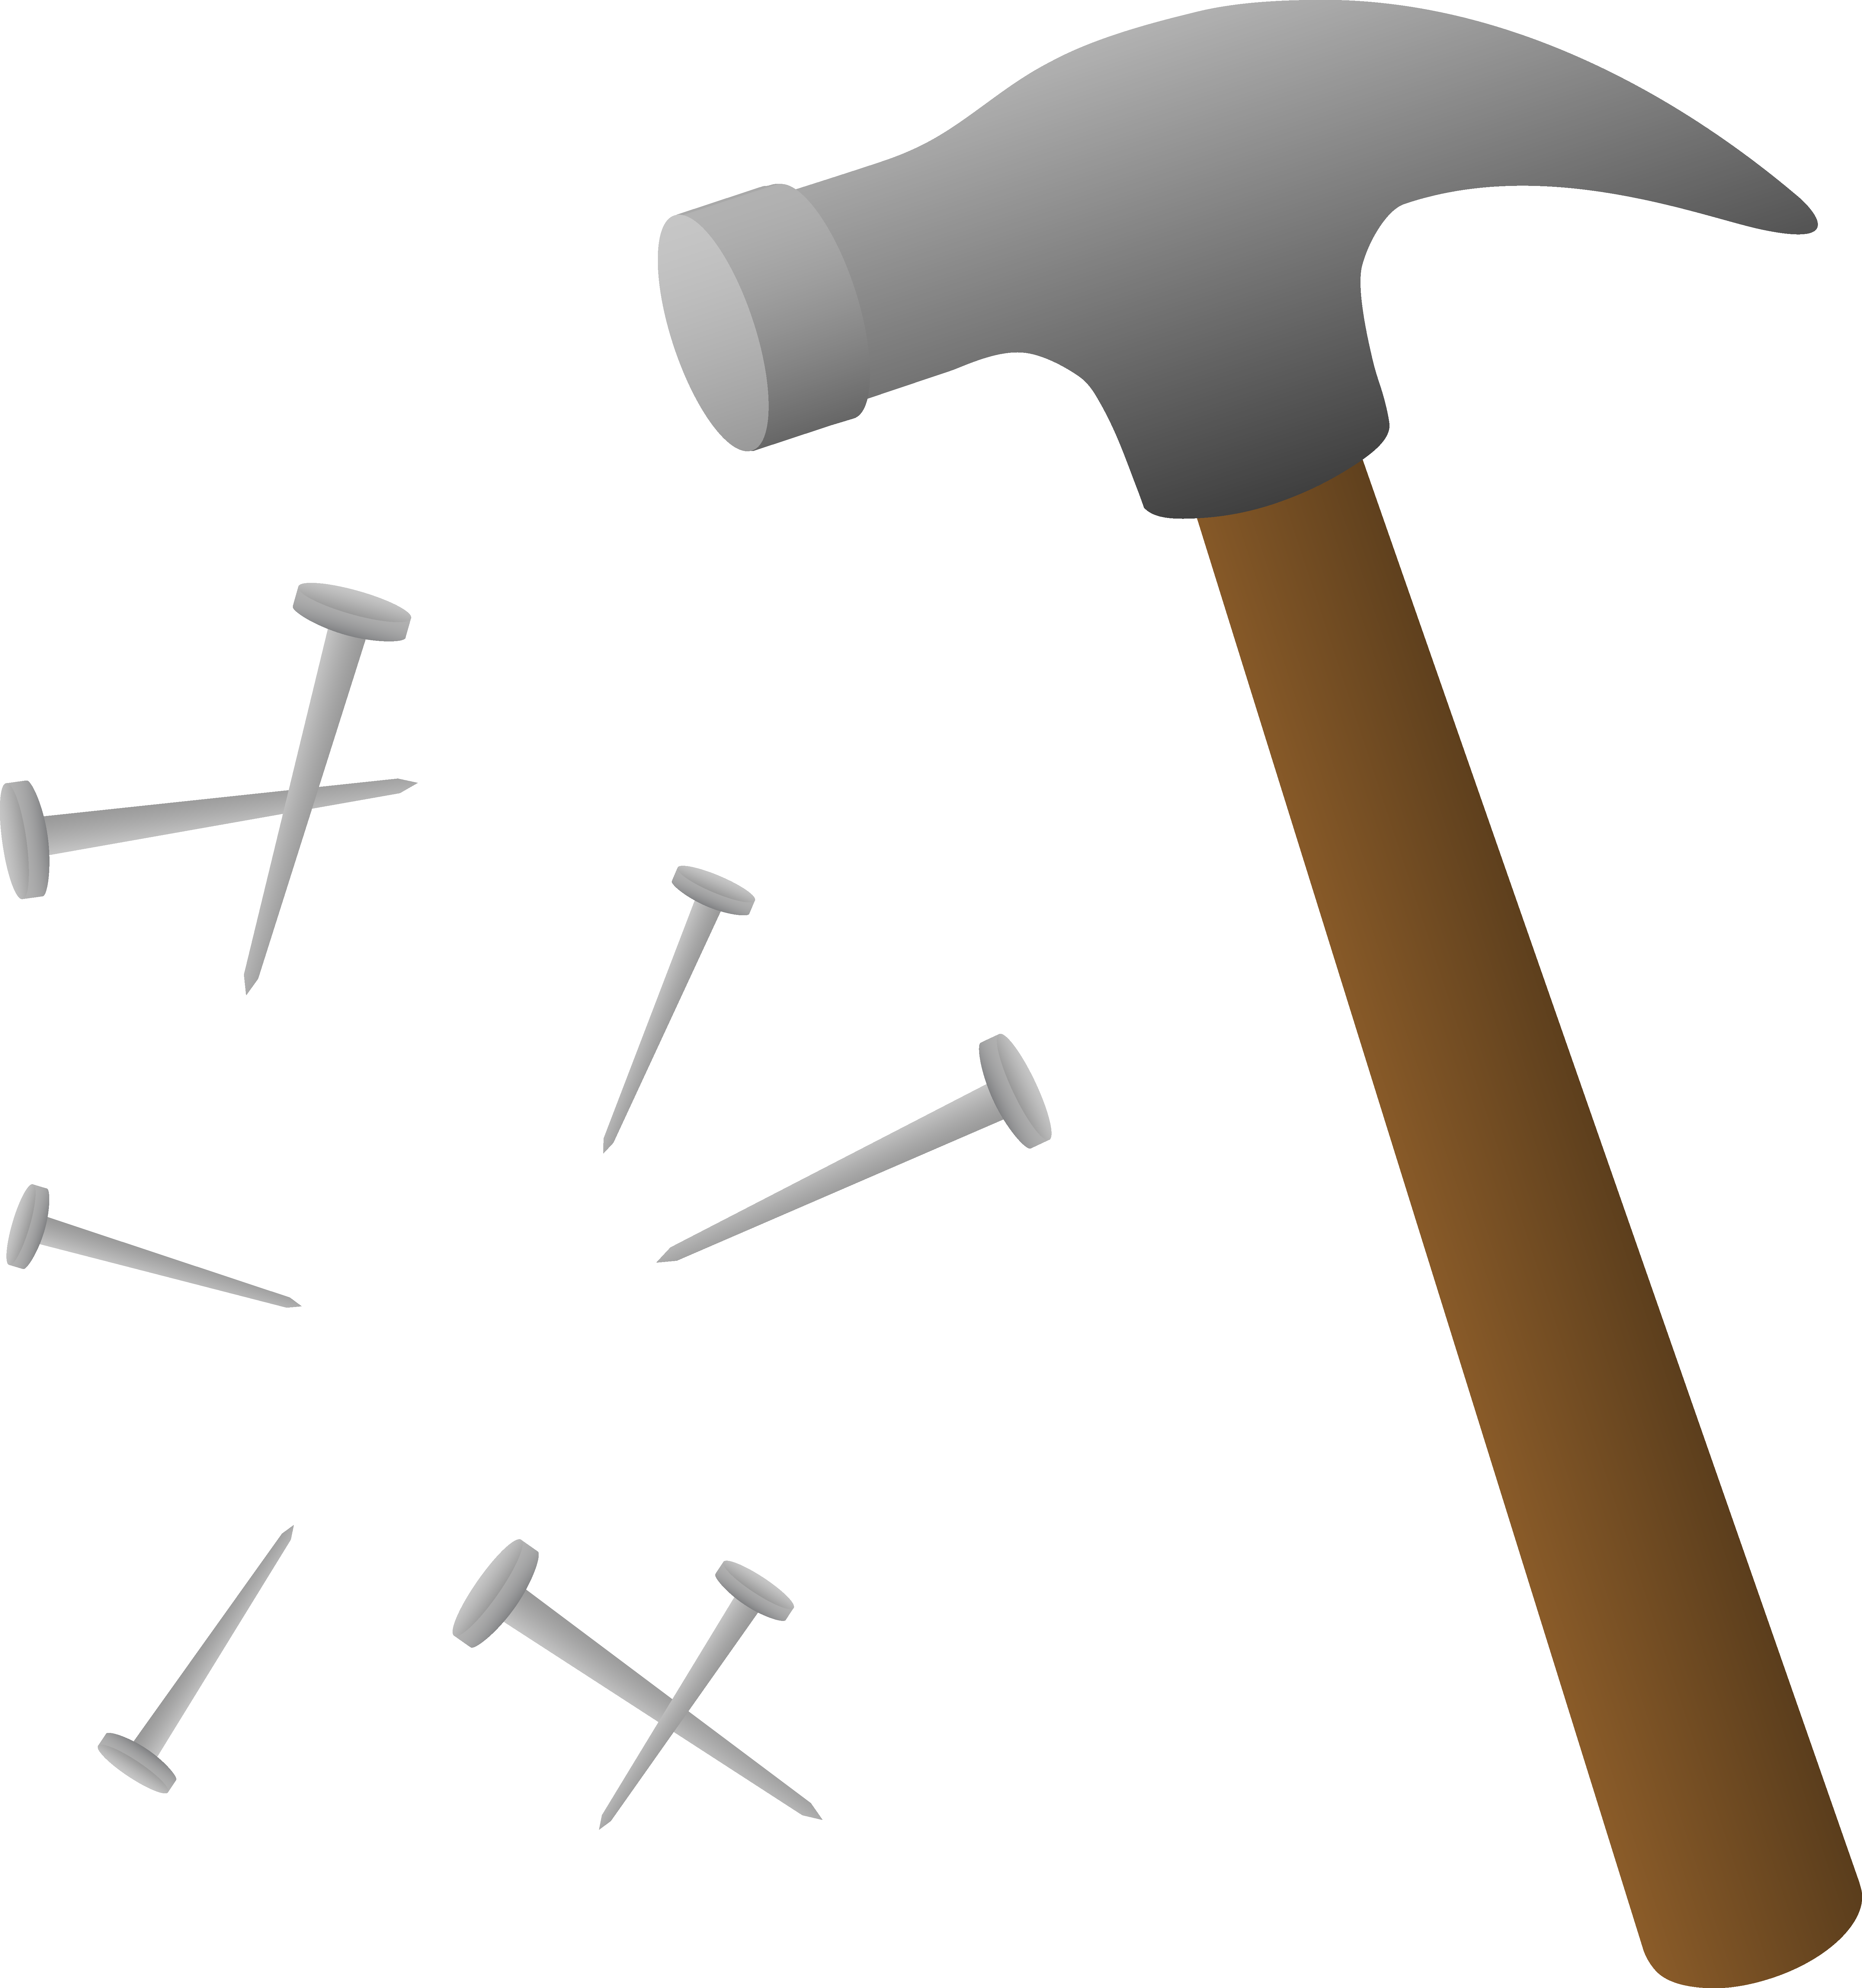 Hammer clipart jpeg.  collection of tools